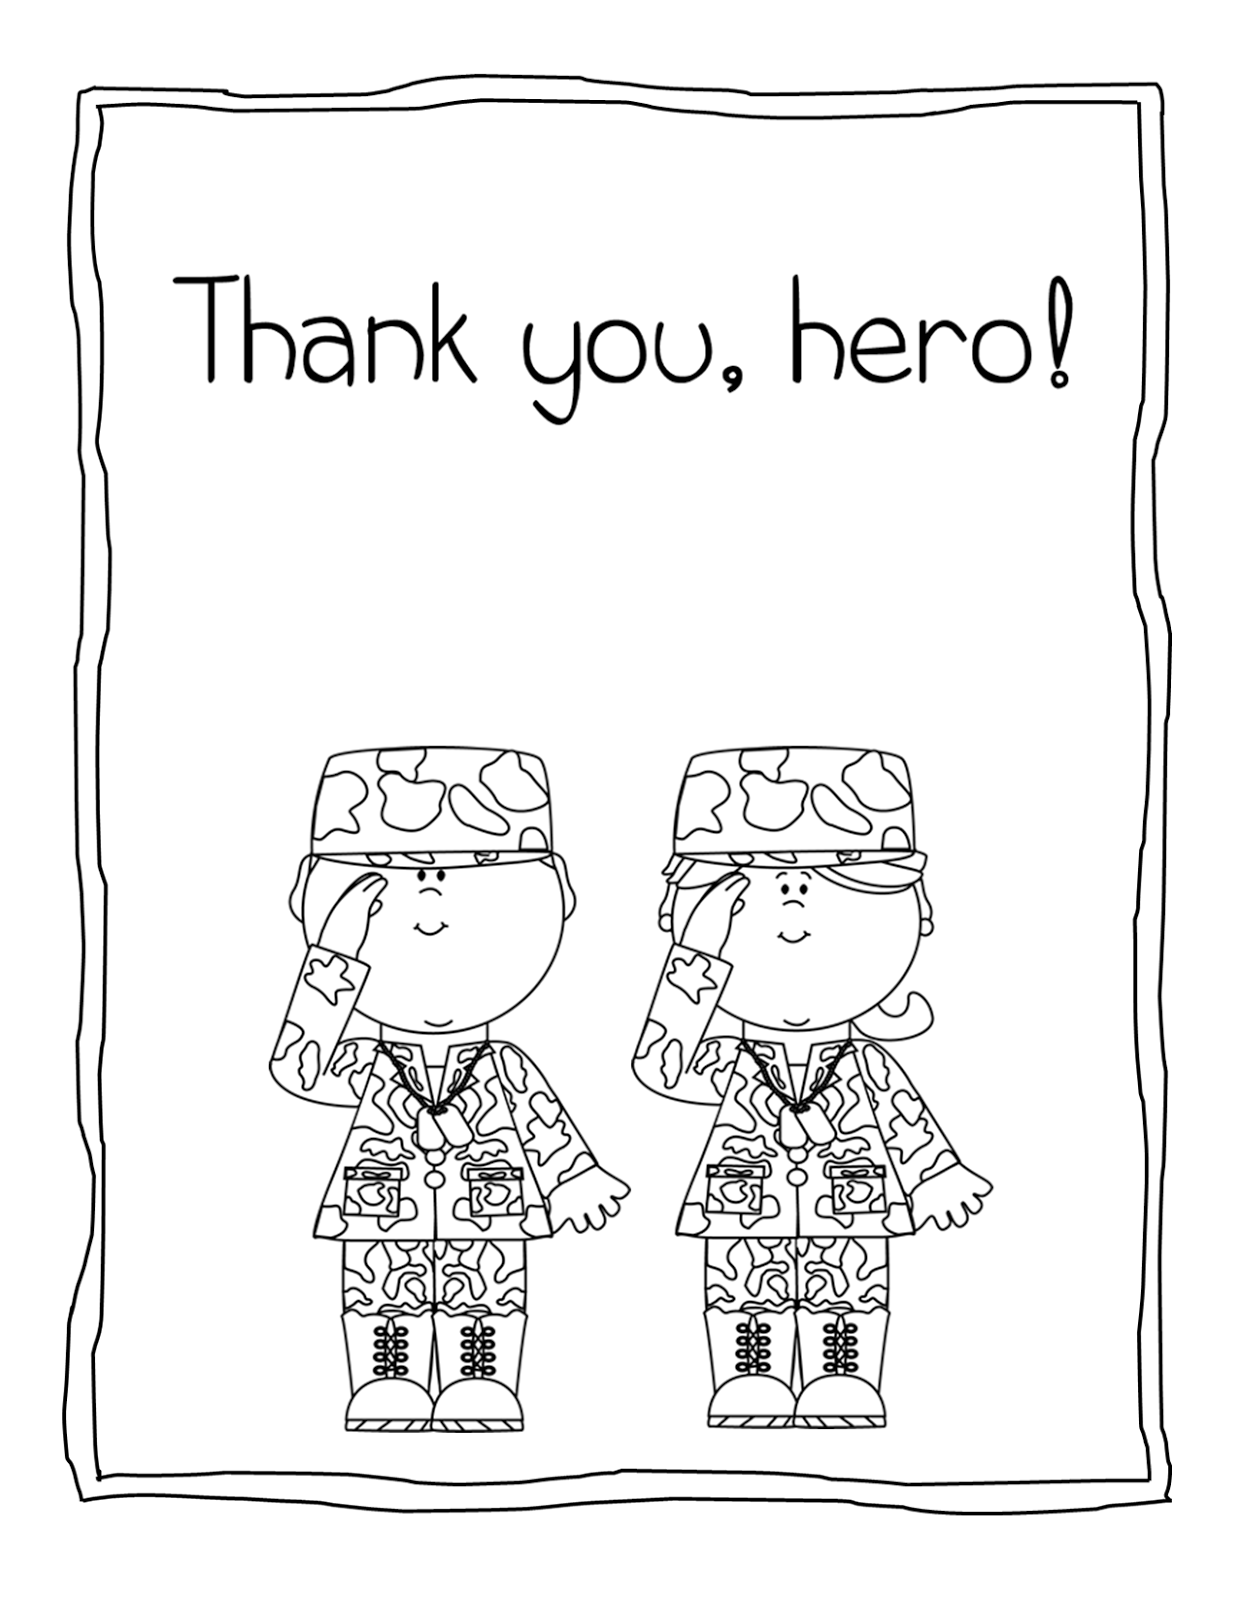 Veterans Day Coloring Pages For Preschool Happy Veterans Day Images 2018 Veterans Day Coloring Page Coloring Pages Inspirational Memorial Day Coloring Pages